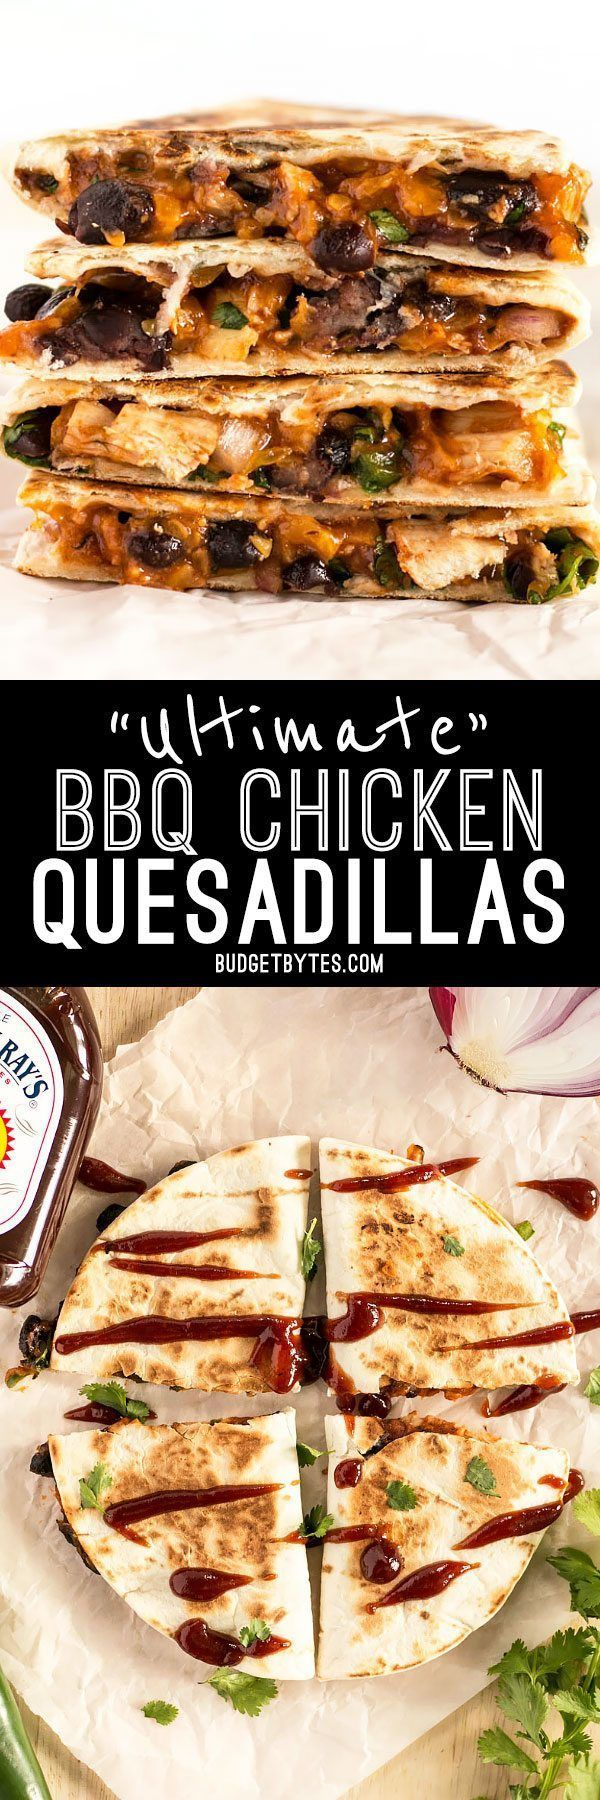 These Ultimate BBQ Chicken Quesadillas are packed with colorful ingredients and deliciously tangy Sweet Baby Ray's BBQ sauce! #ad @budgetbytes